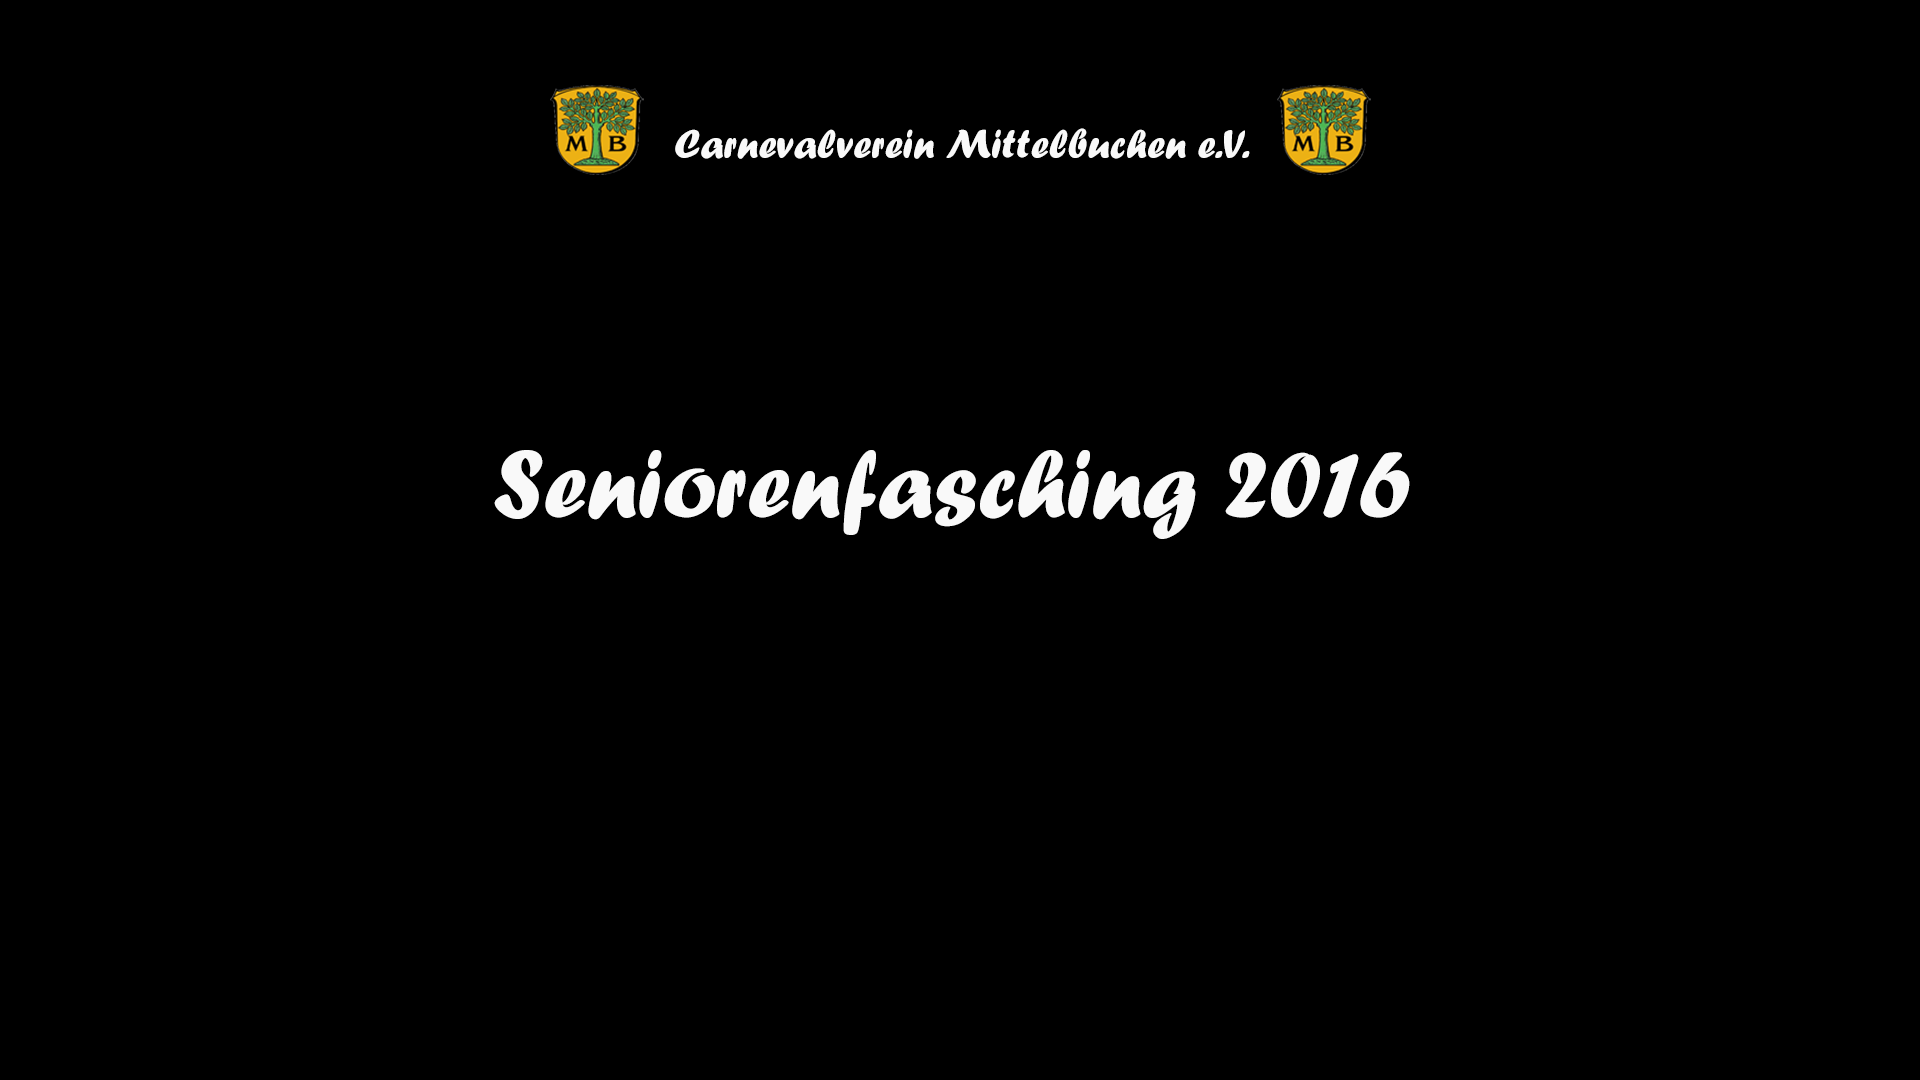 Seniorenfasching 201